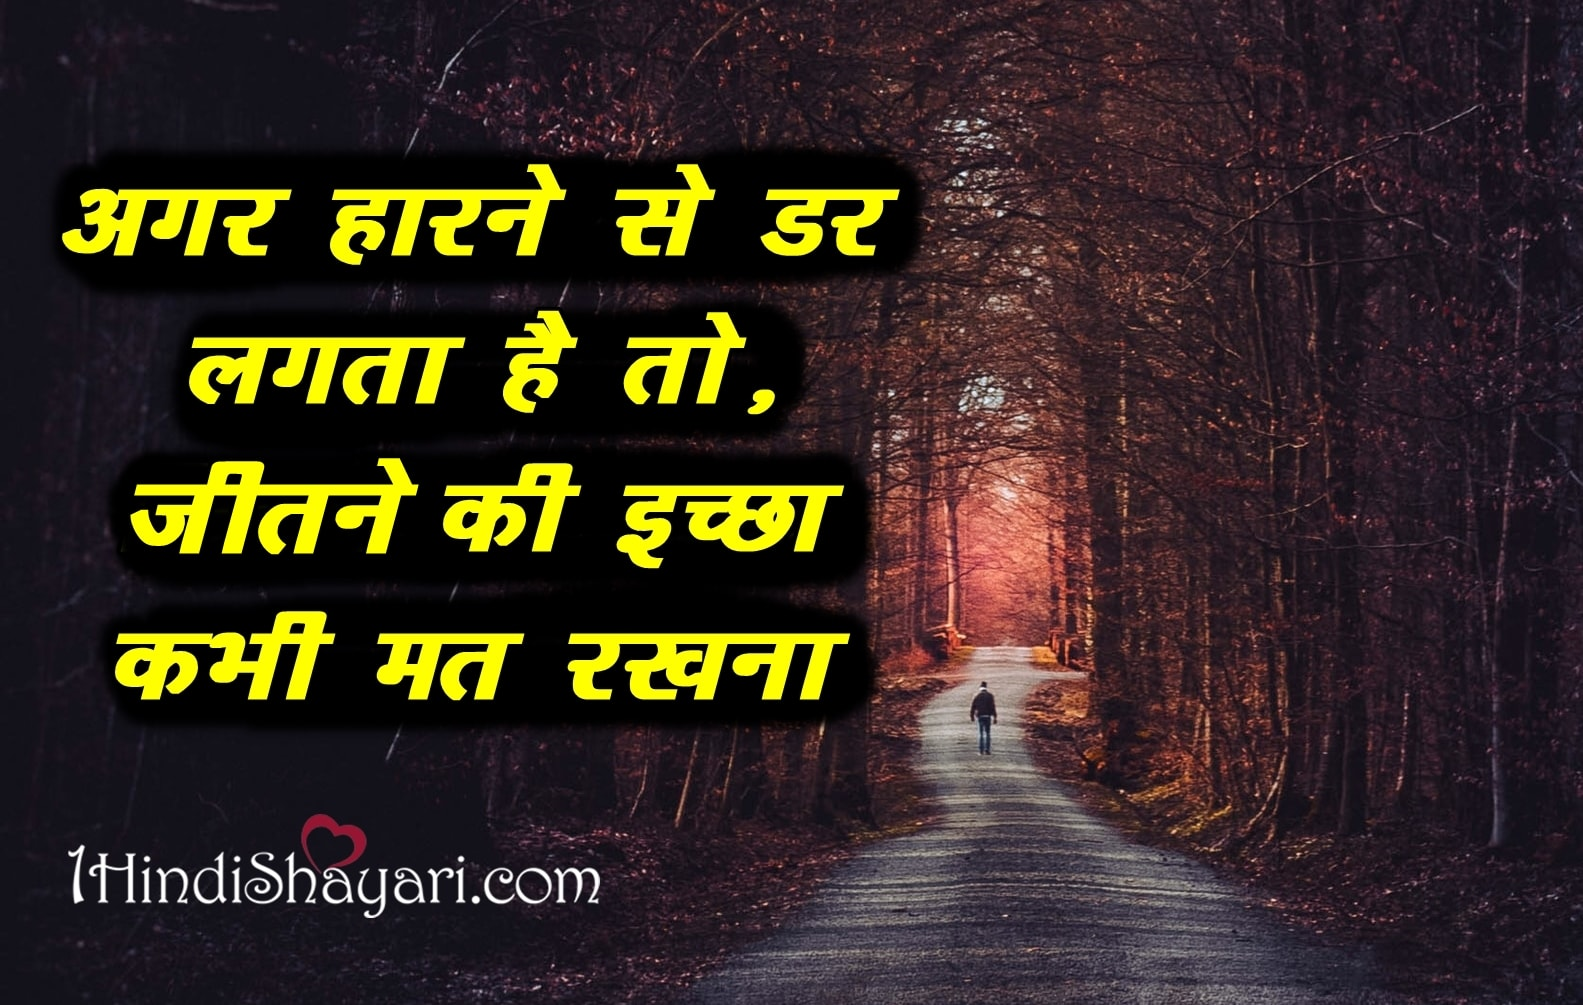 , अगर हारने से डर लगता है तो-Motivational-Quotes, motivational quotes b